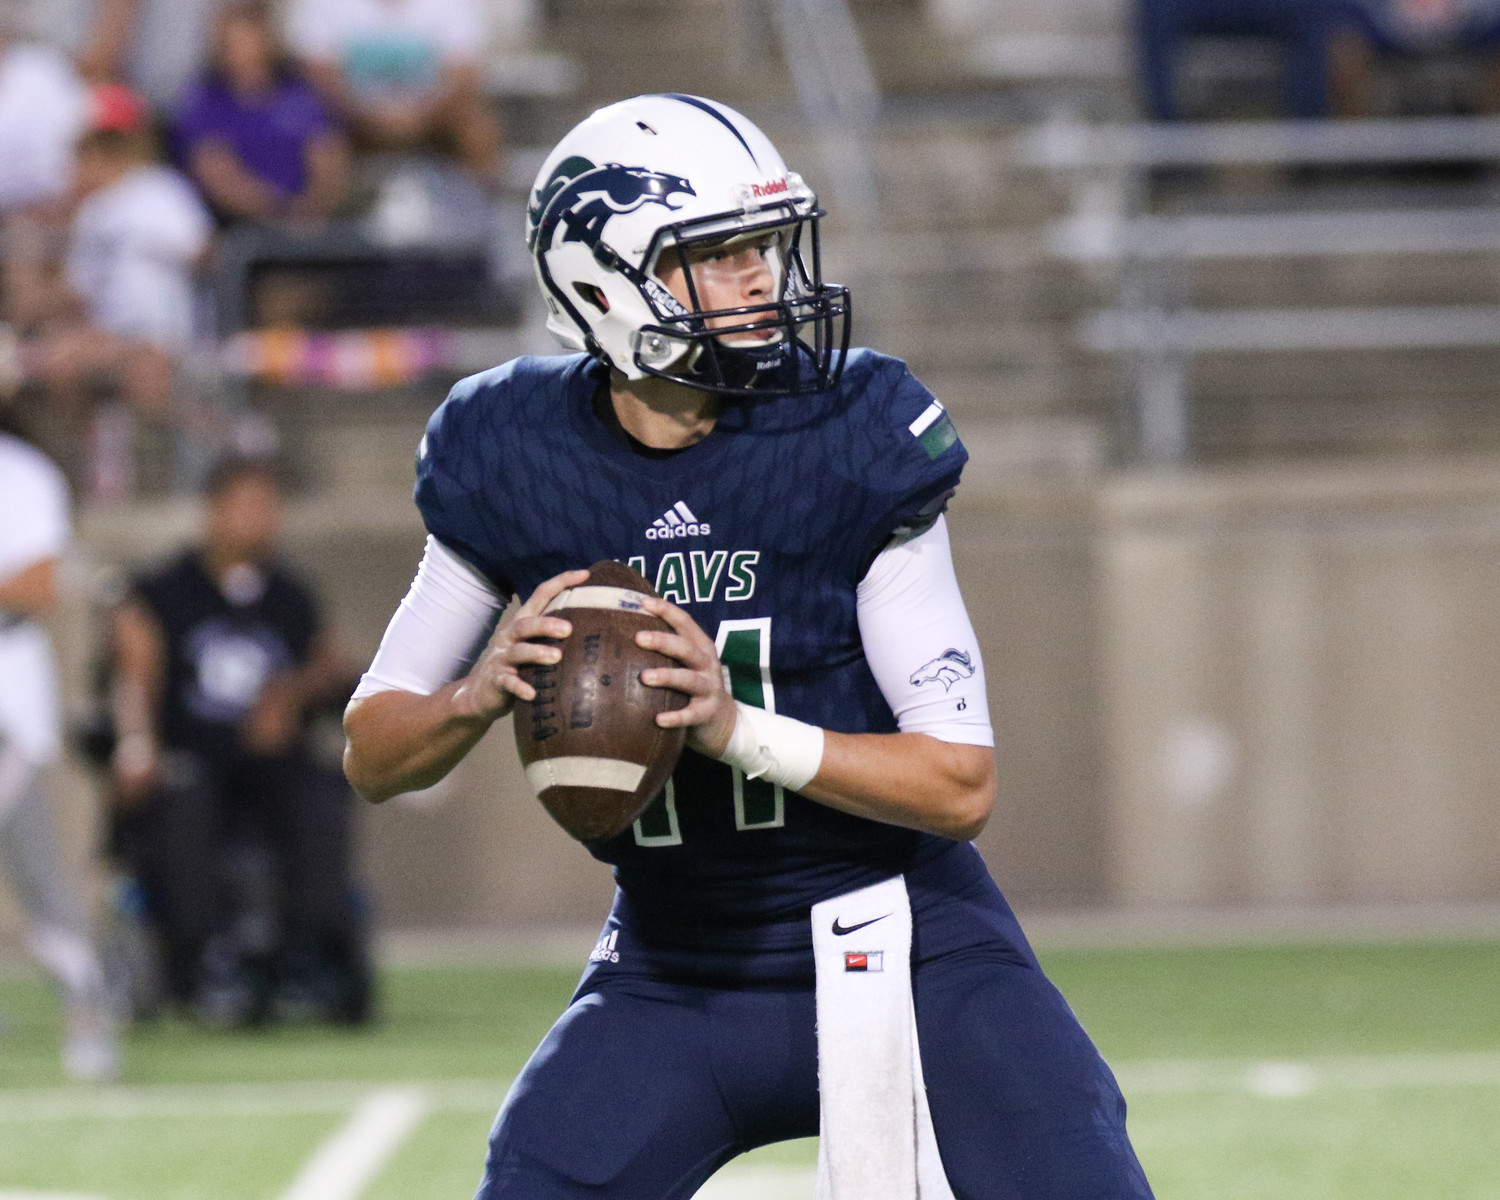 McNeil quarterback Zane Kampfer threw for more than 300 yards and three touchdowns in the season opener against Del Valle. The Mavericks face off with Glenn on Friday.